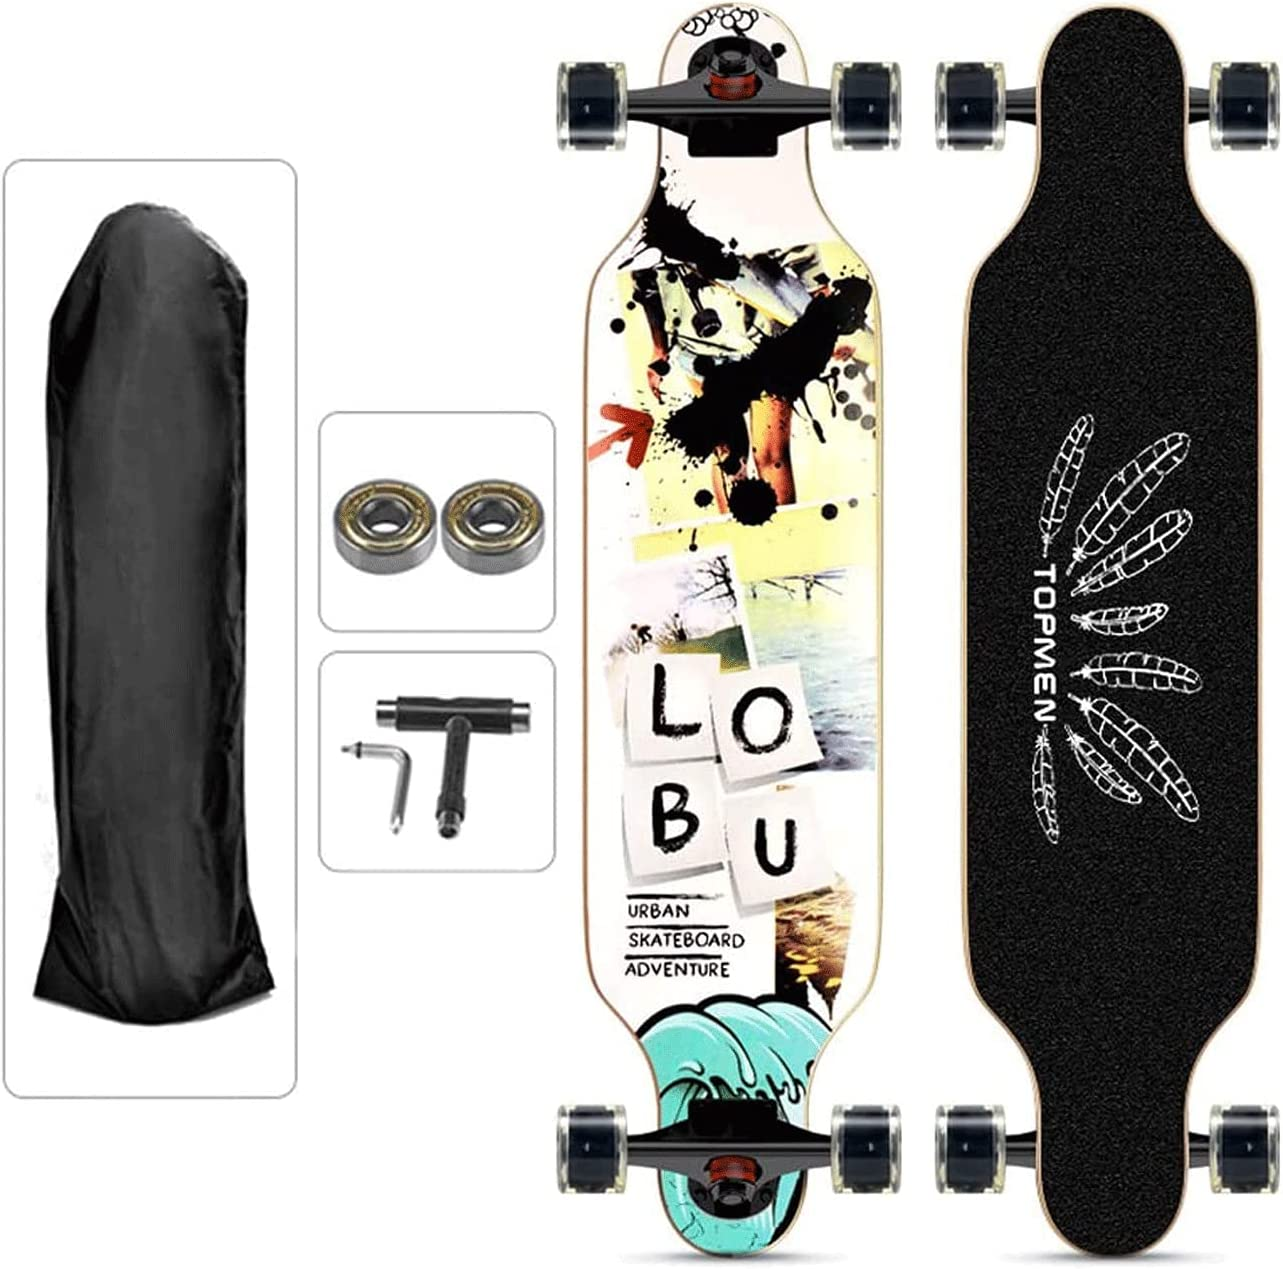 EEGUAI New product!! Longboard Skateboard 9 Layer Complete Denver Mall Maple Cr